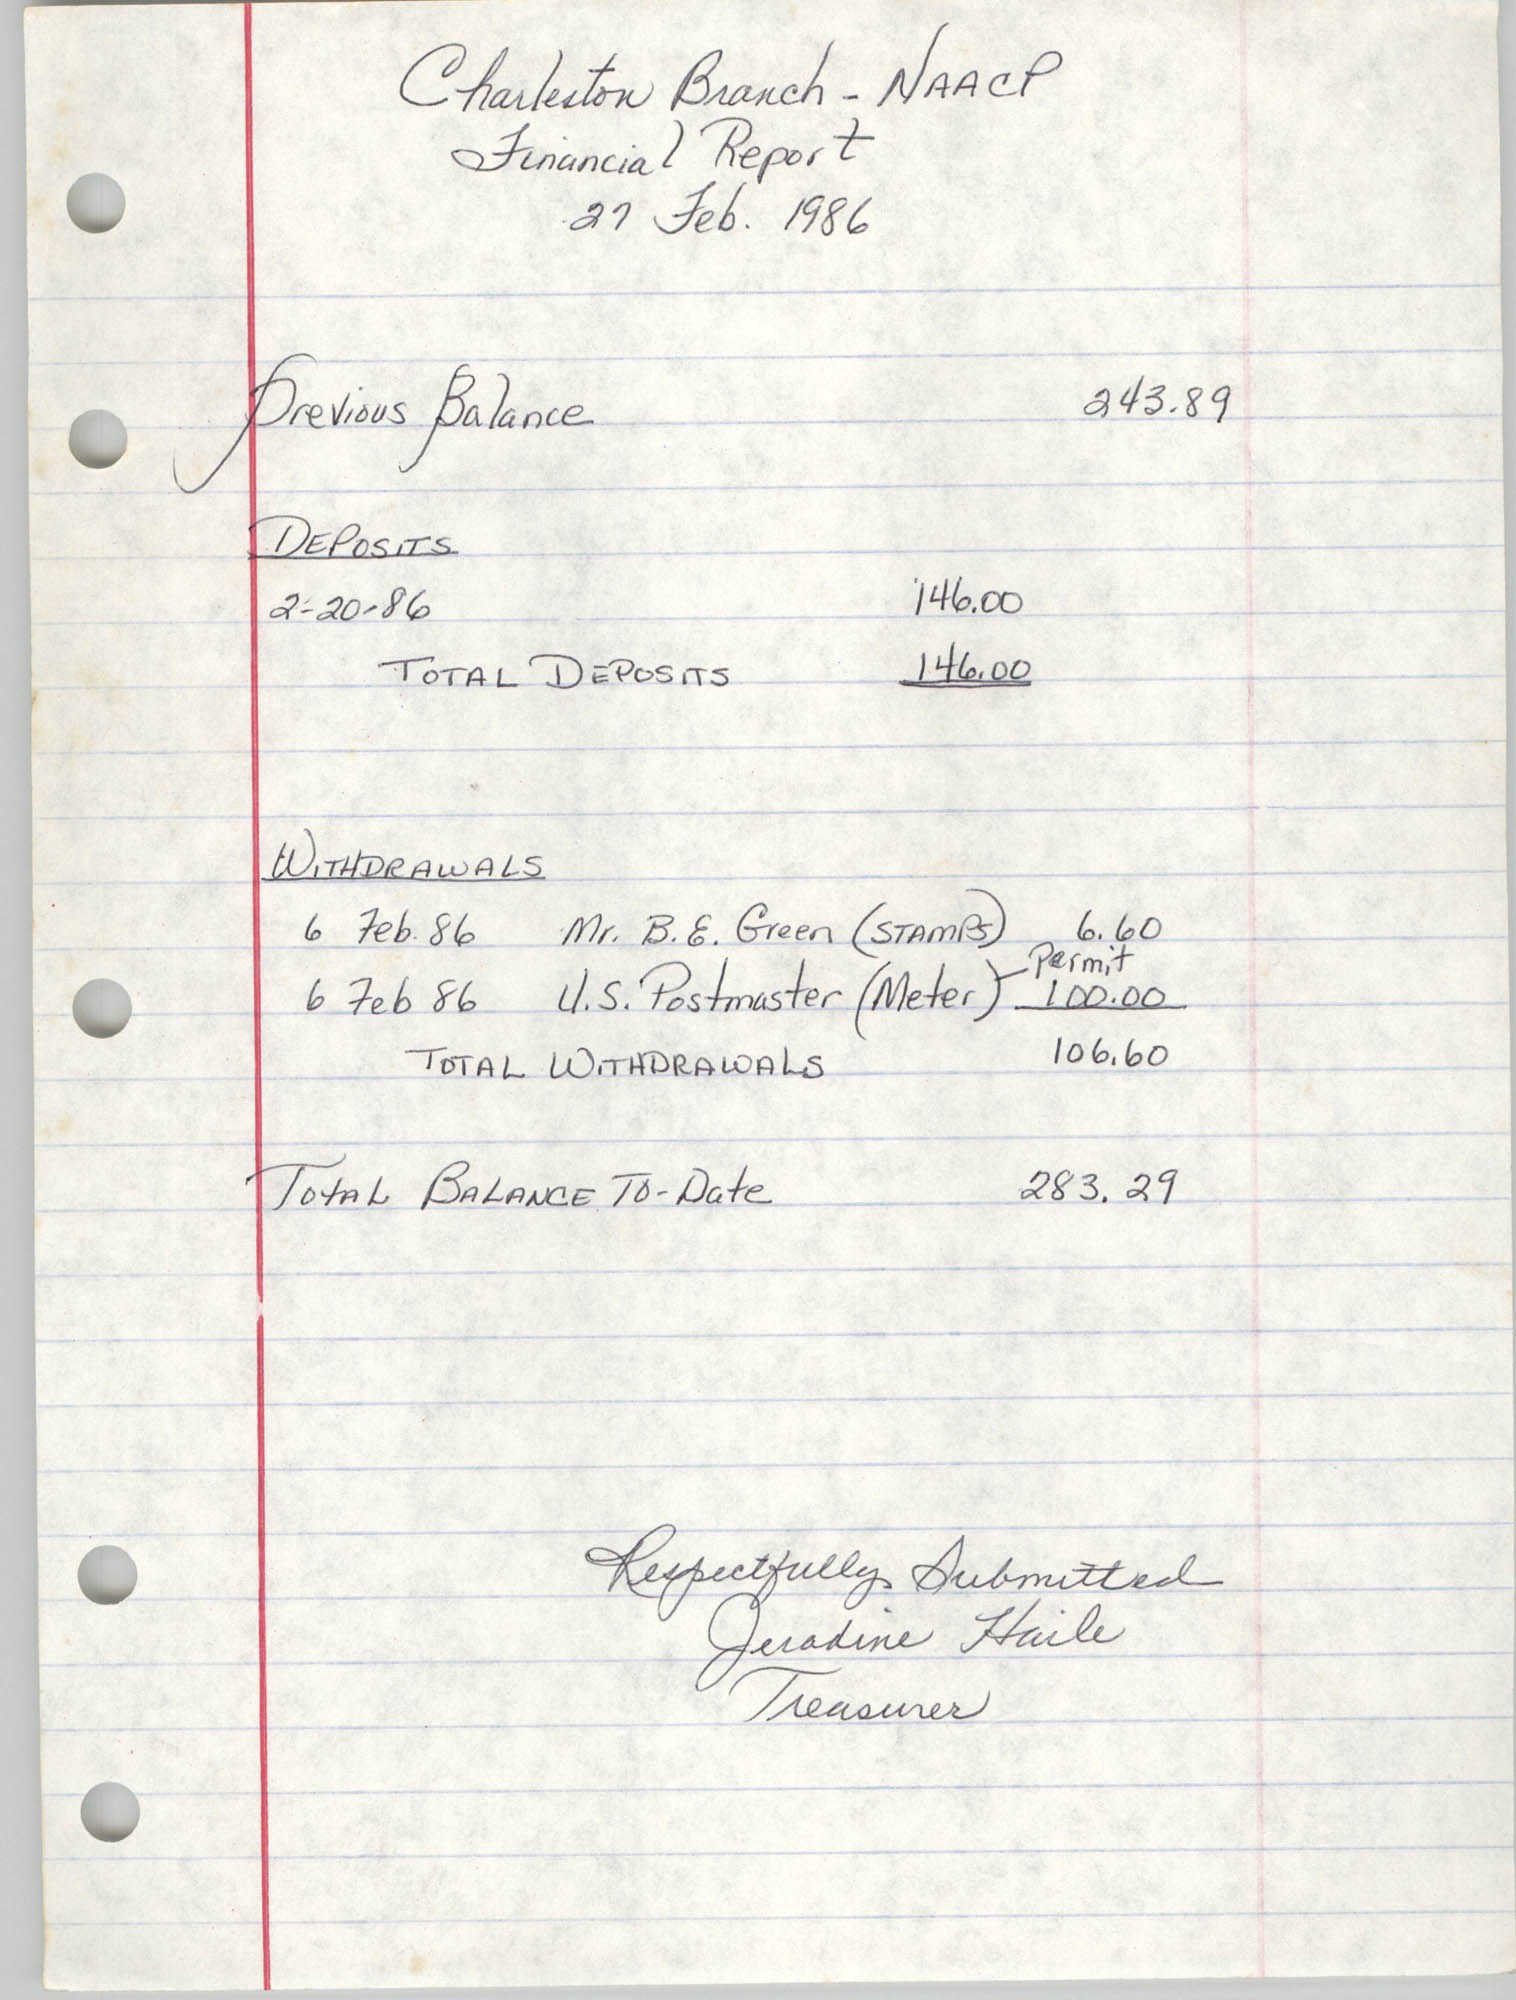 Charleston Branch of the NAACP Financial Report, February 27, 1986